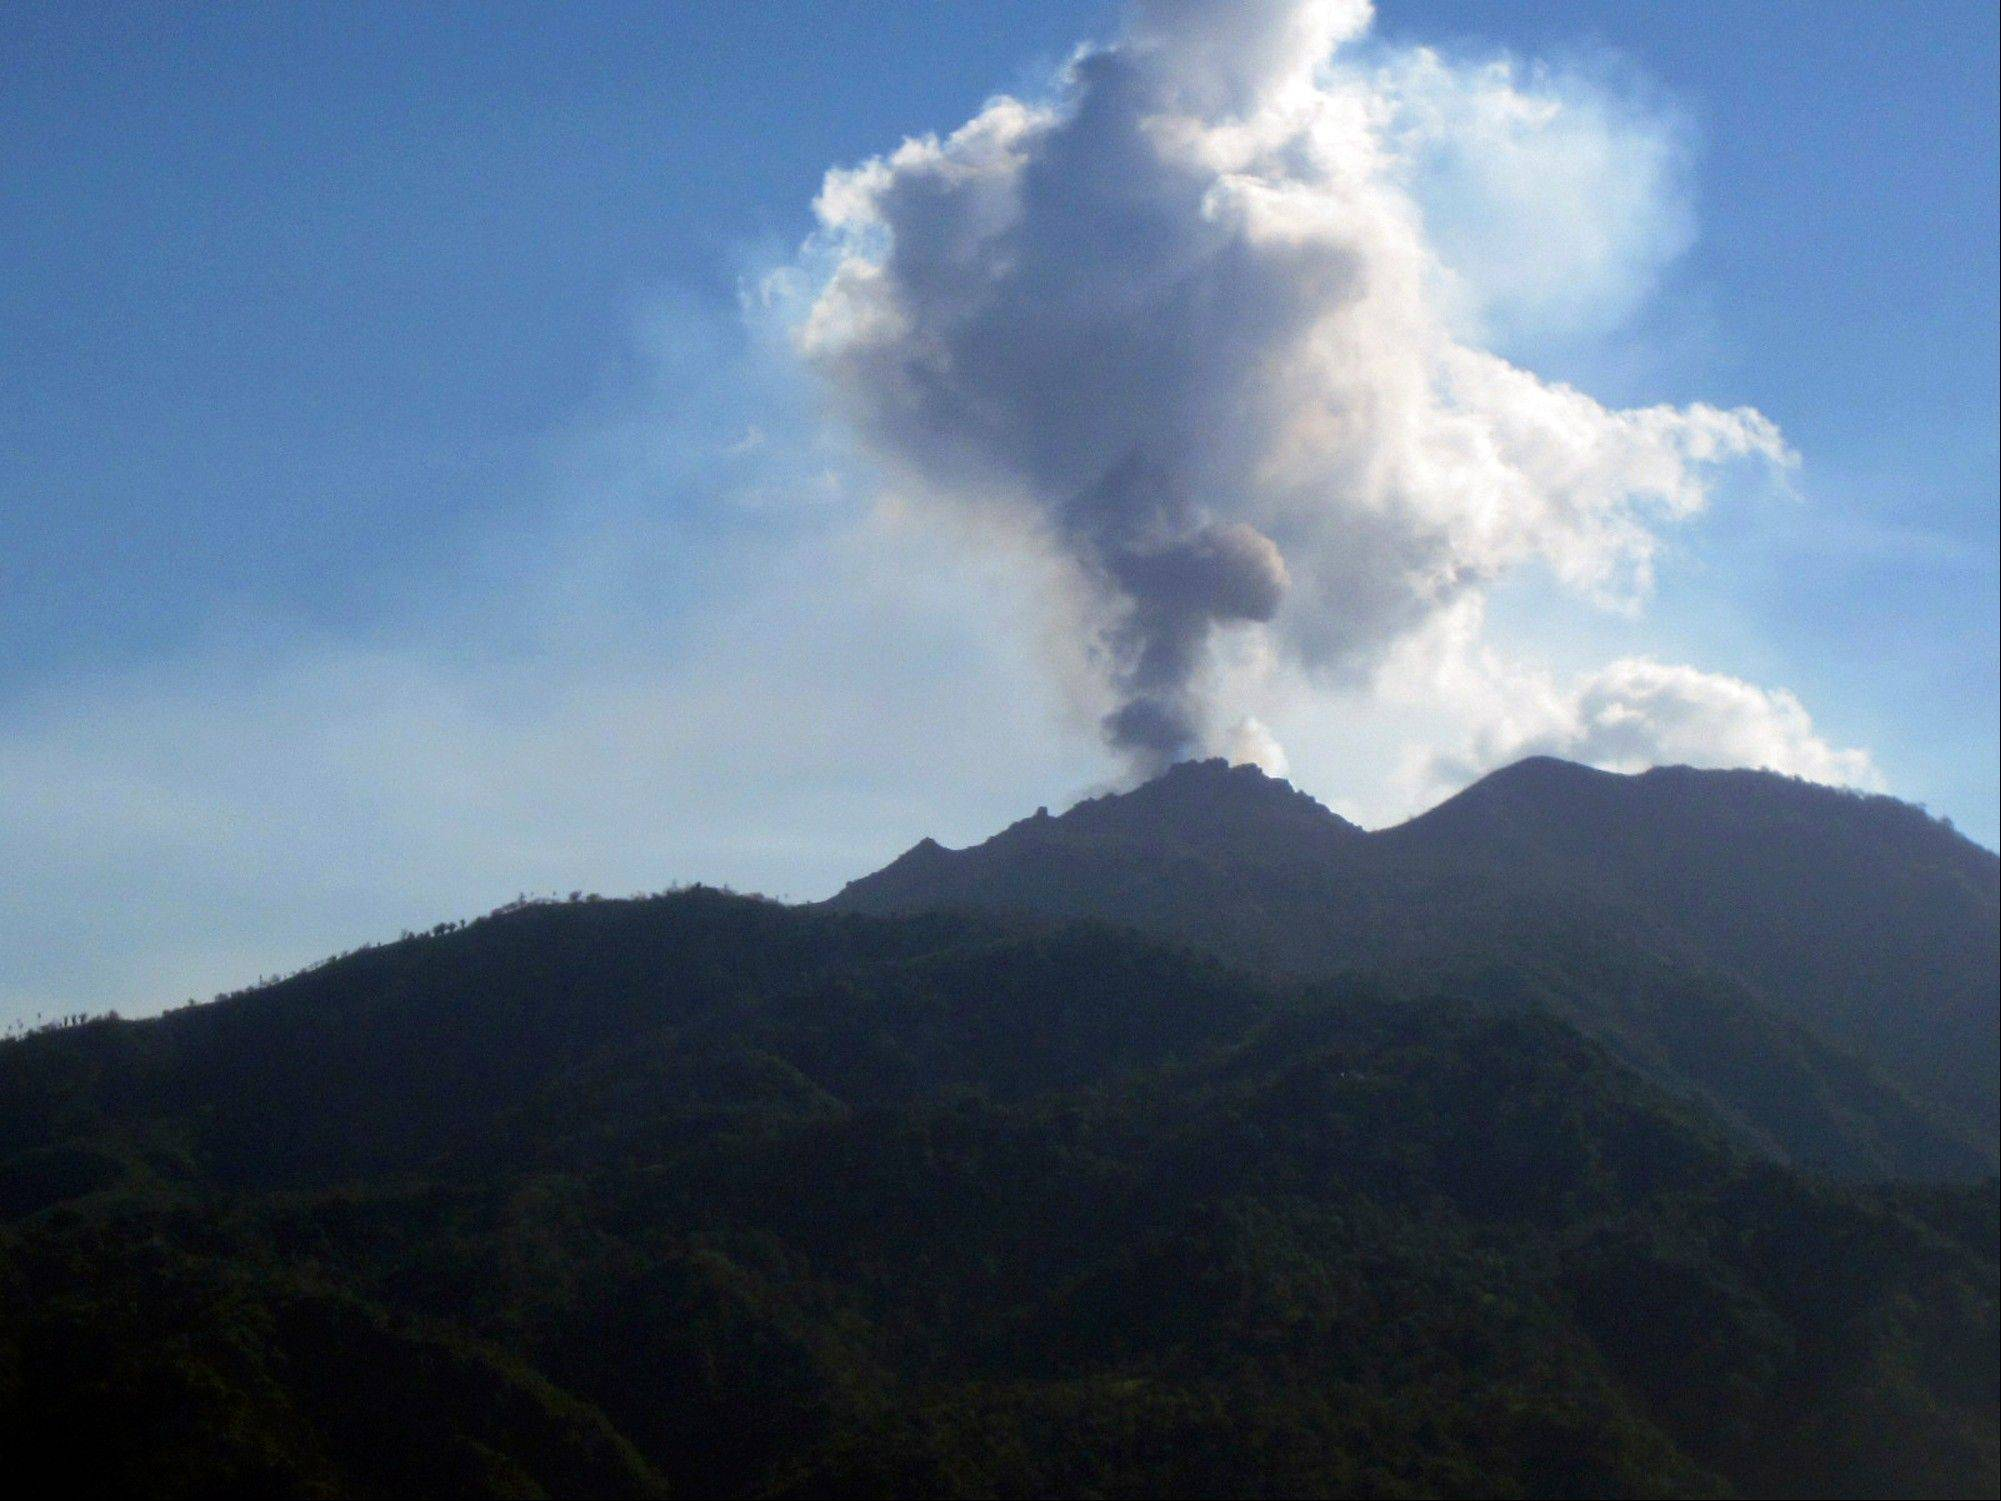 Mount Rokatenda spews volcanic smoke on Palue island, Indonesia, Monday. The volcano spewed more hot ash and lava on the tiny Indonesian island Monday after causing six deaths during its eruption over the weekend.